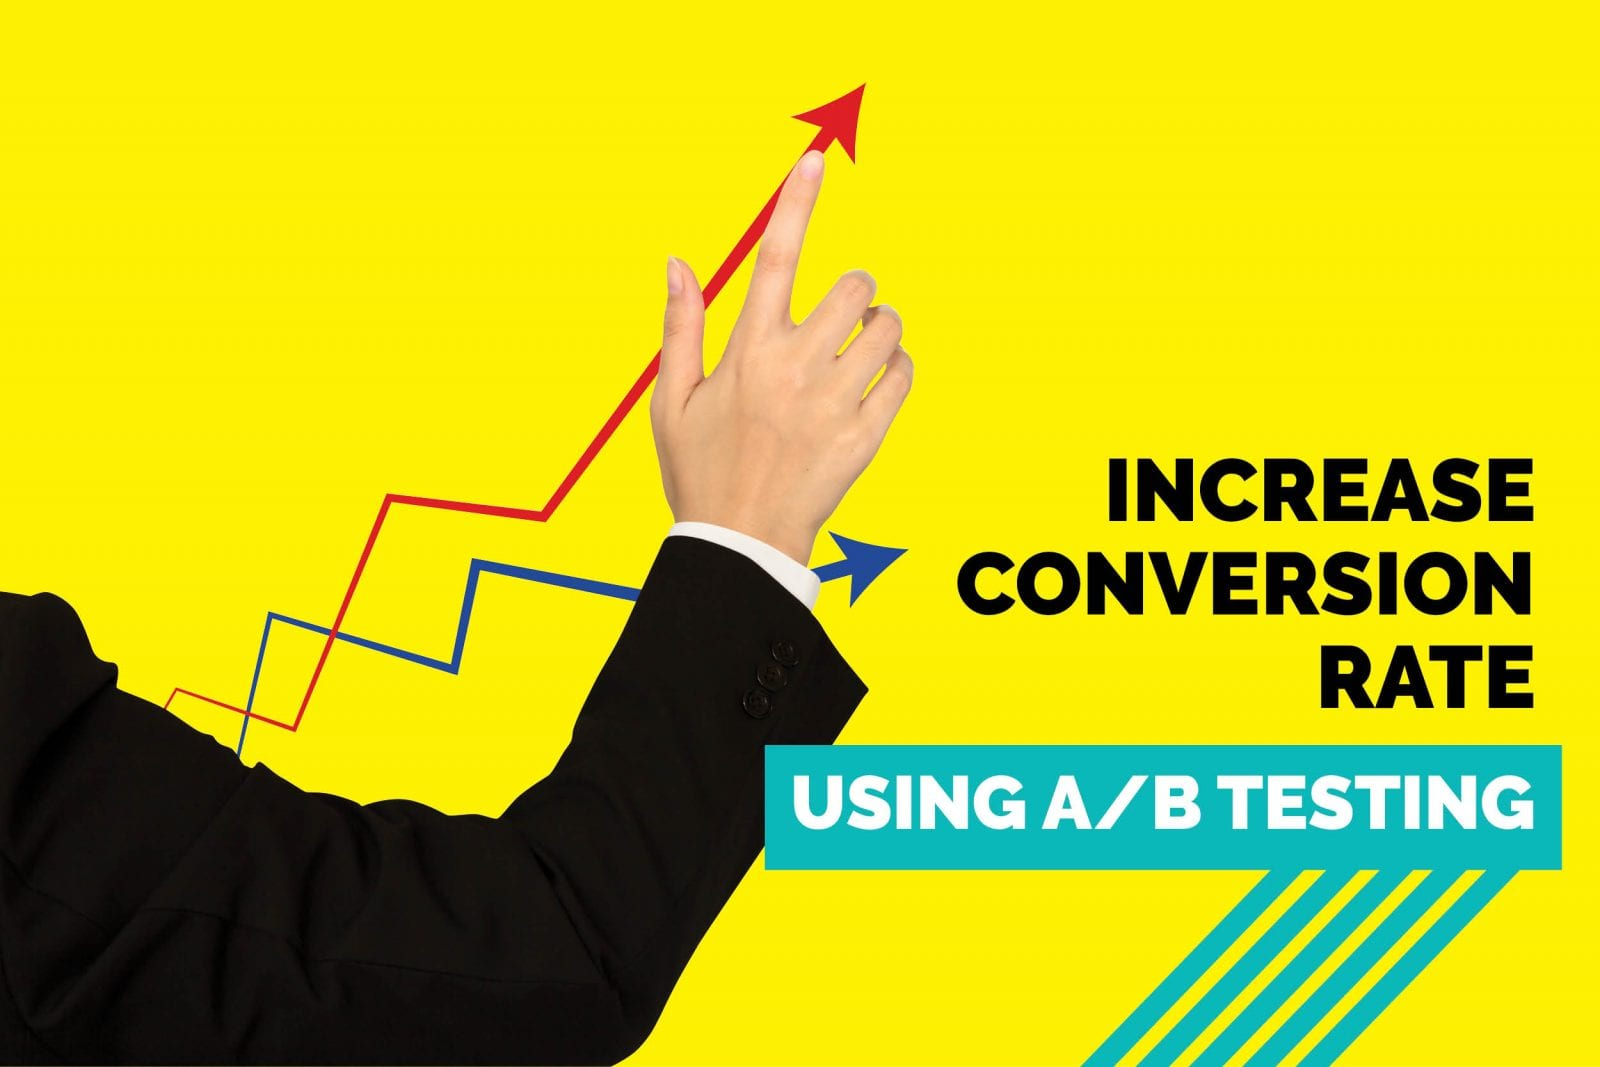 How to Increase Conversion Rate Using A/B Testing by 200%?